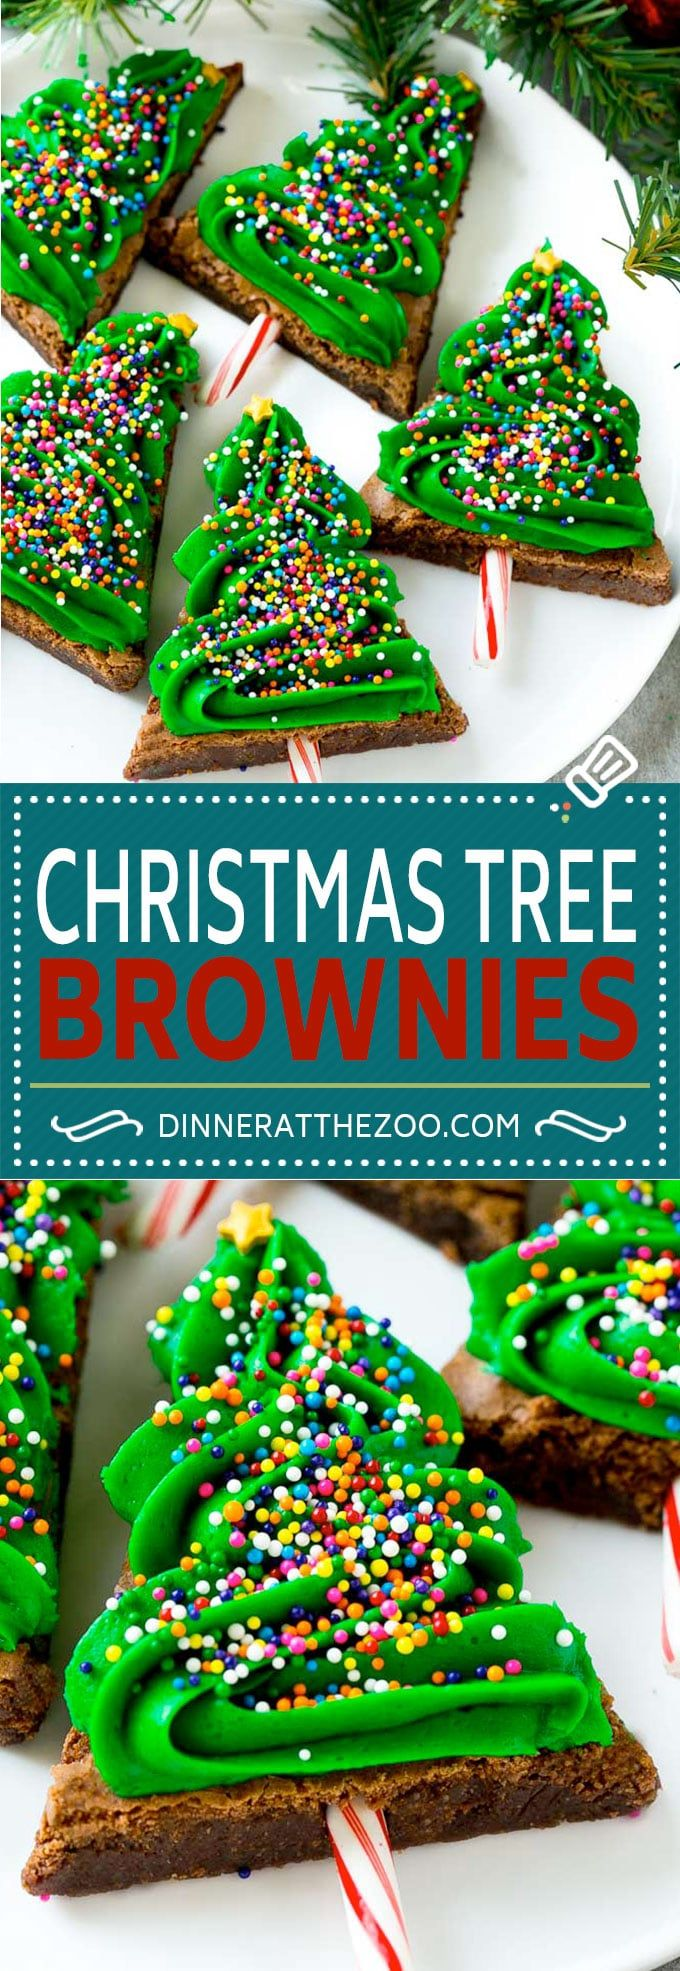 Christmas Tree Brownies #ad